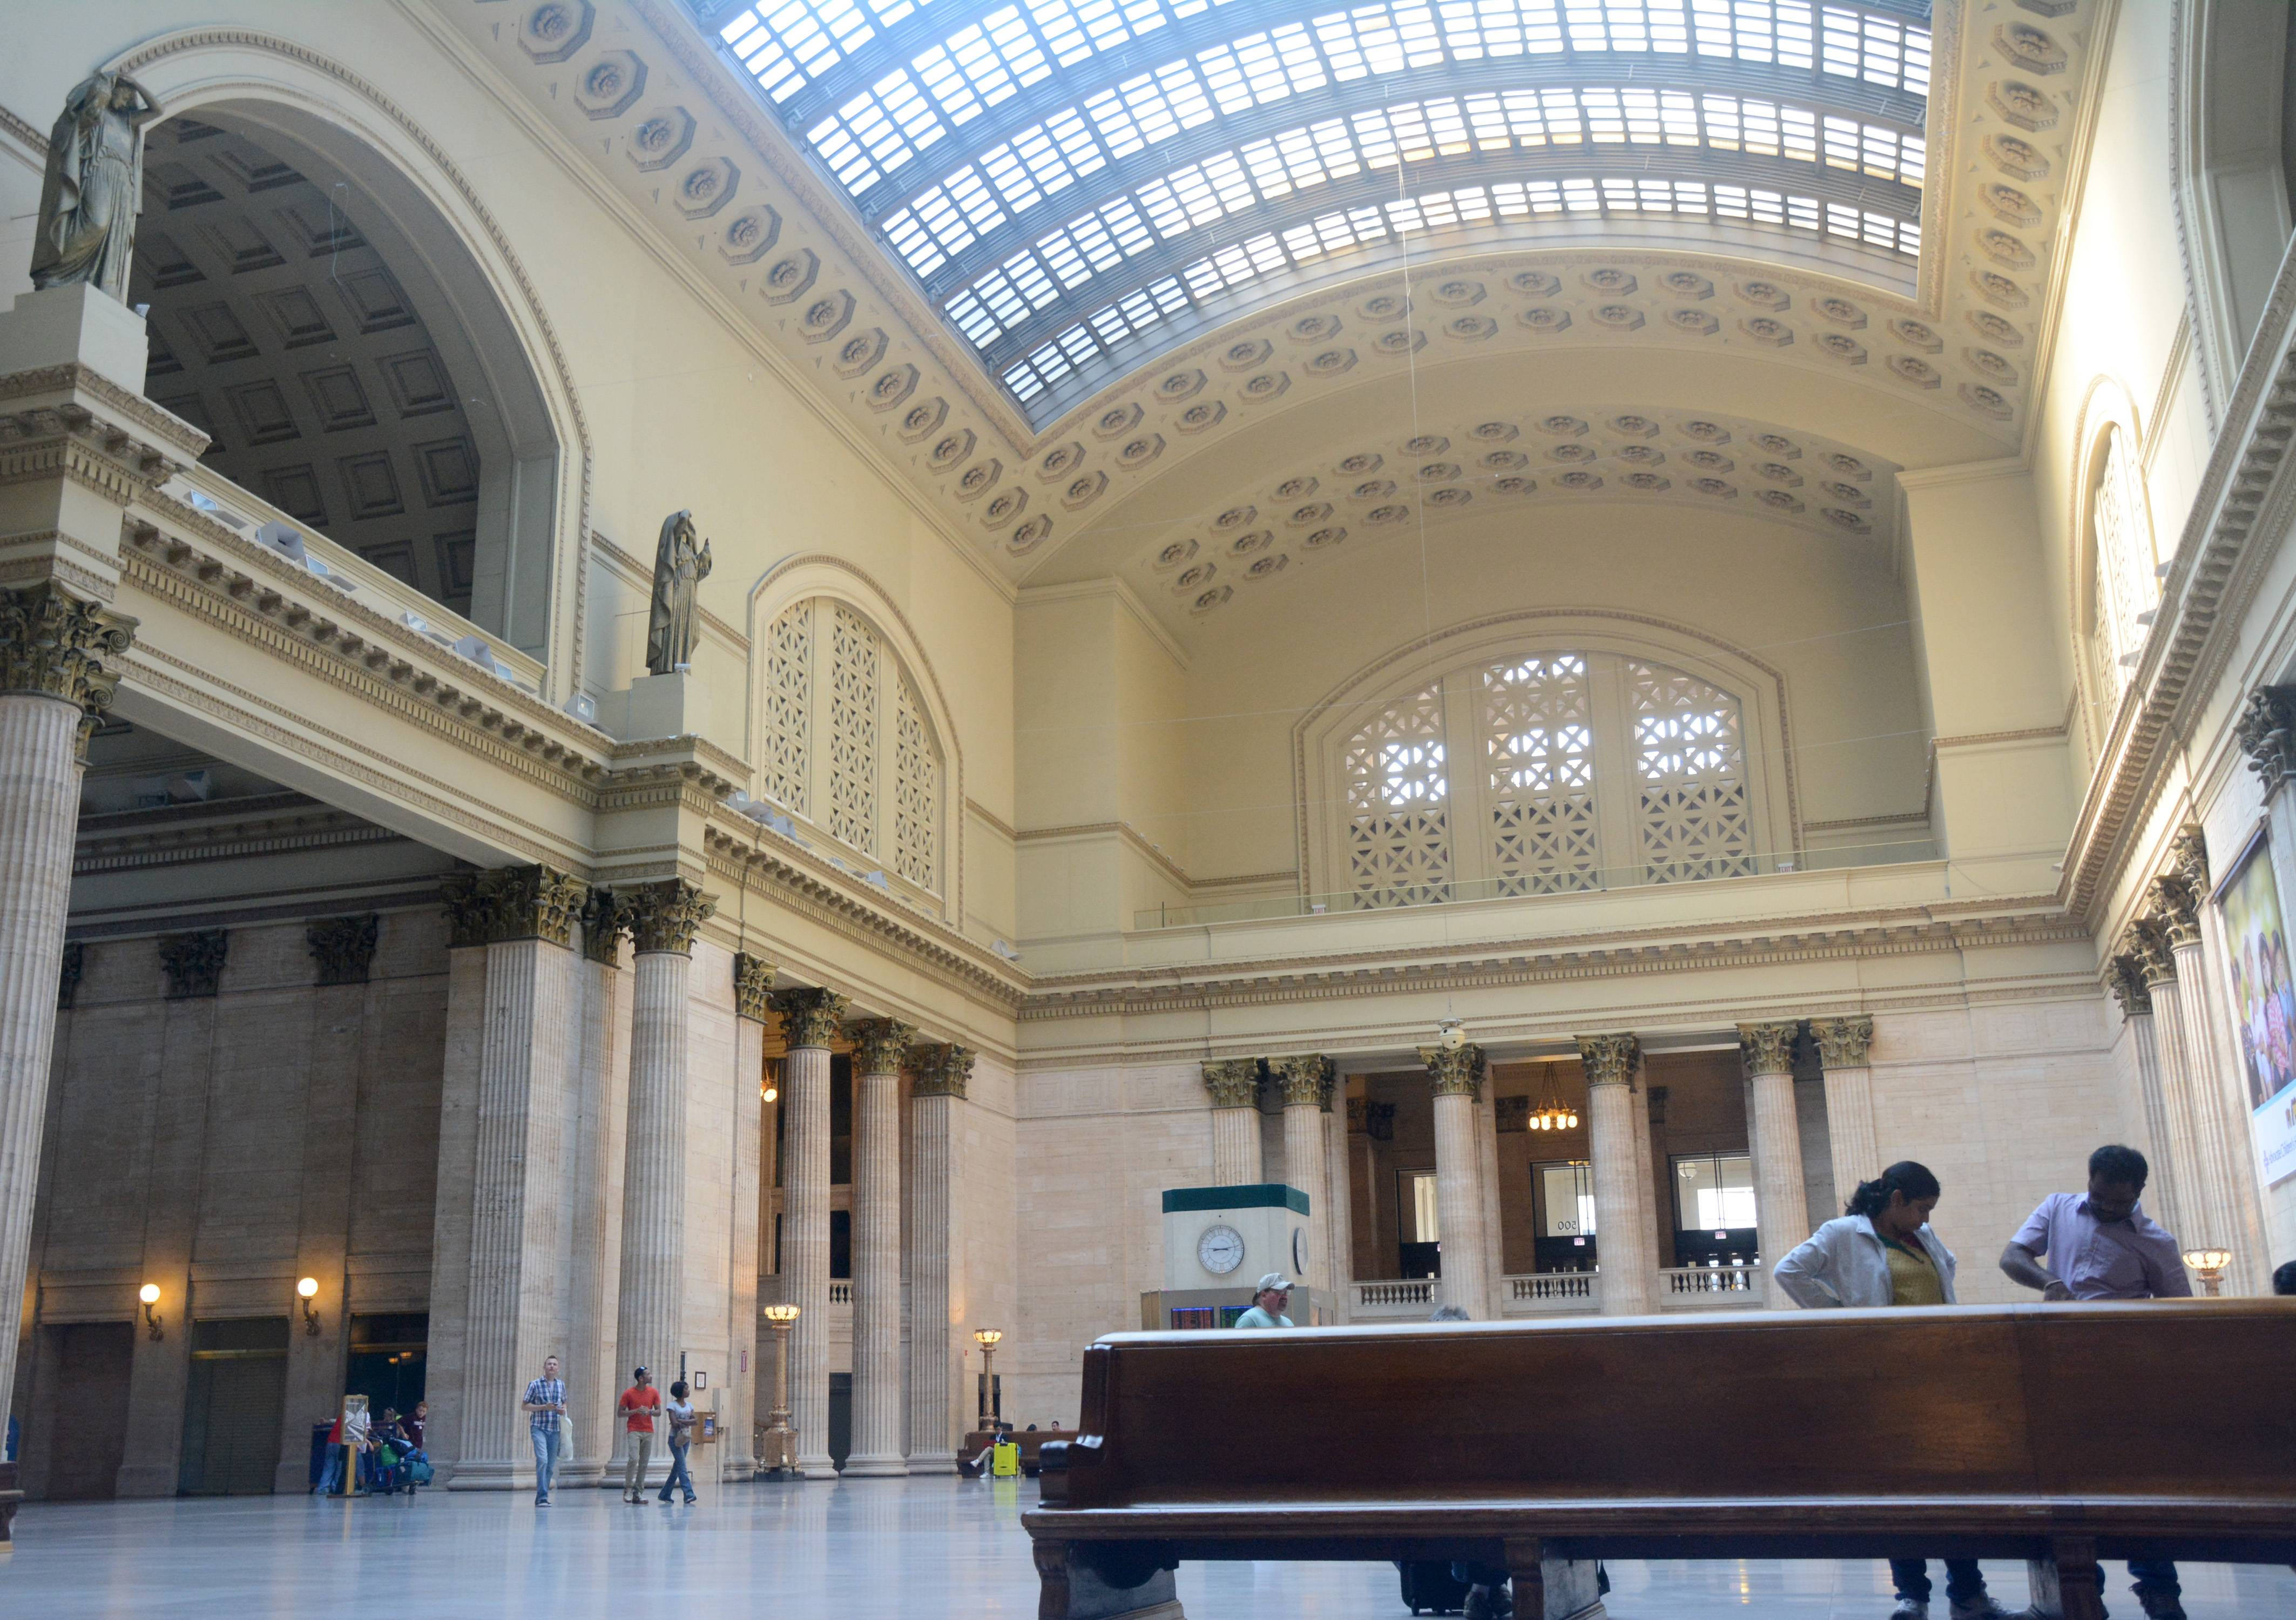 Union Station renovation plans to be announced today